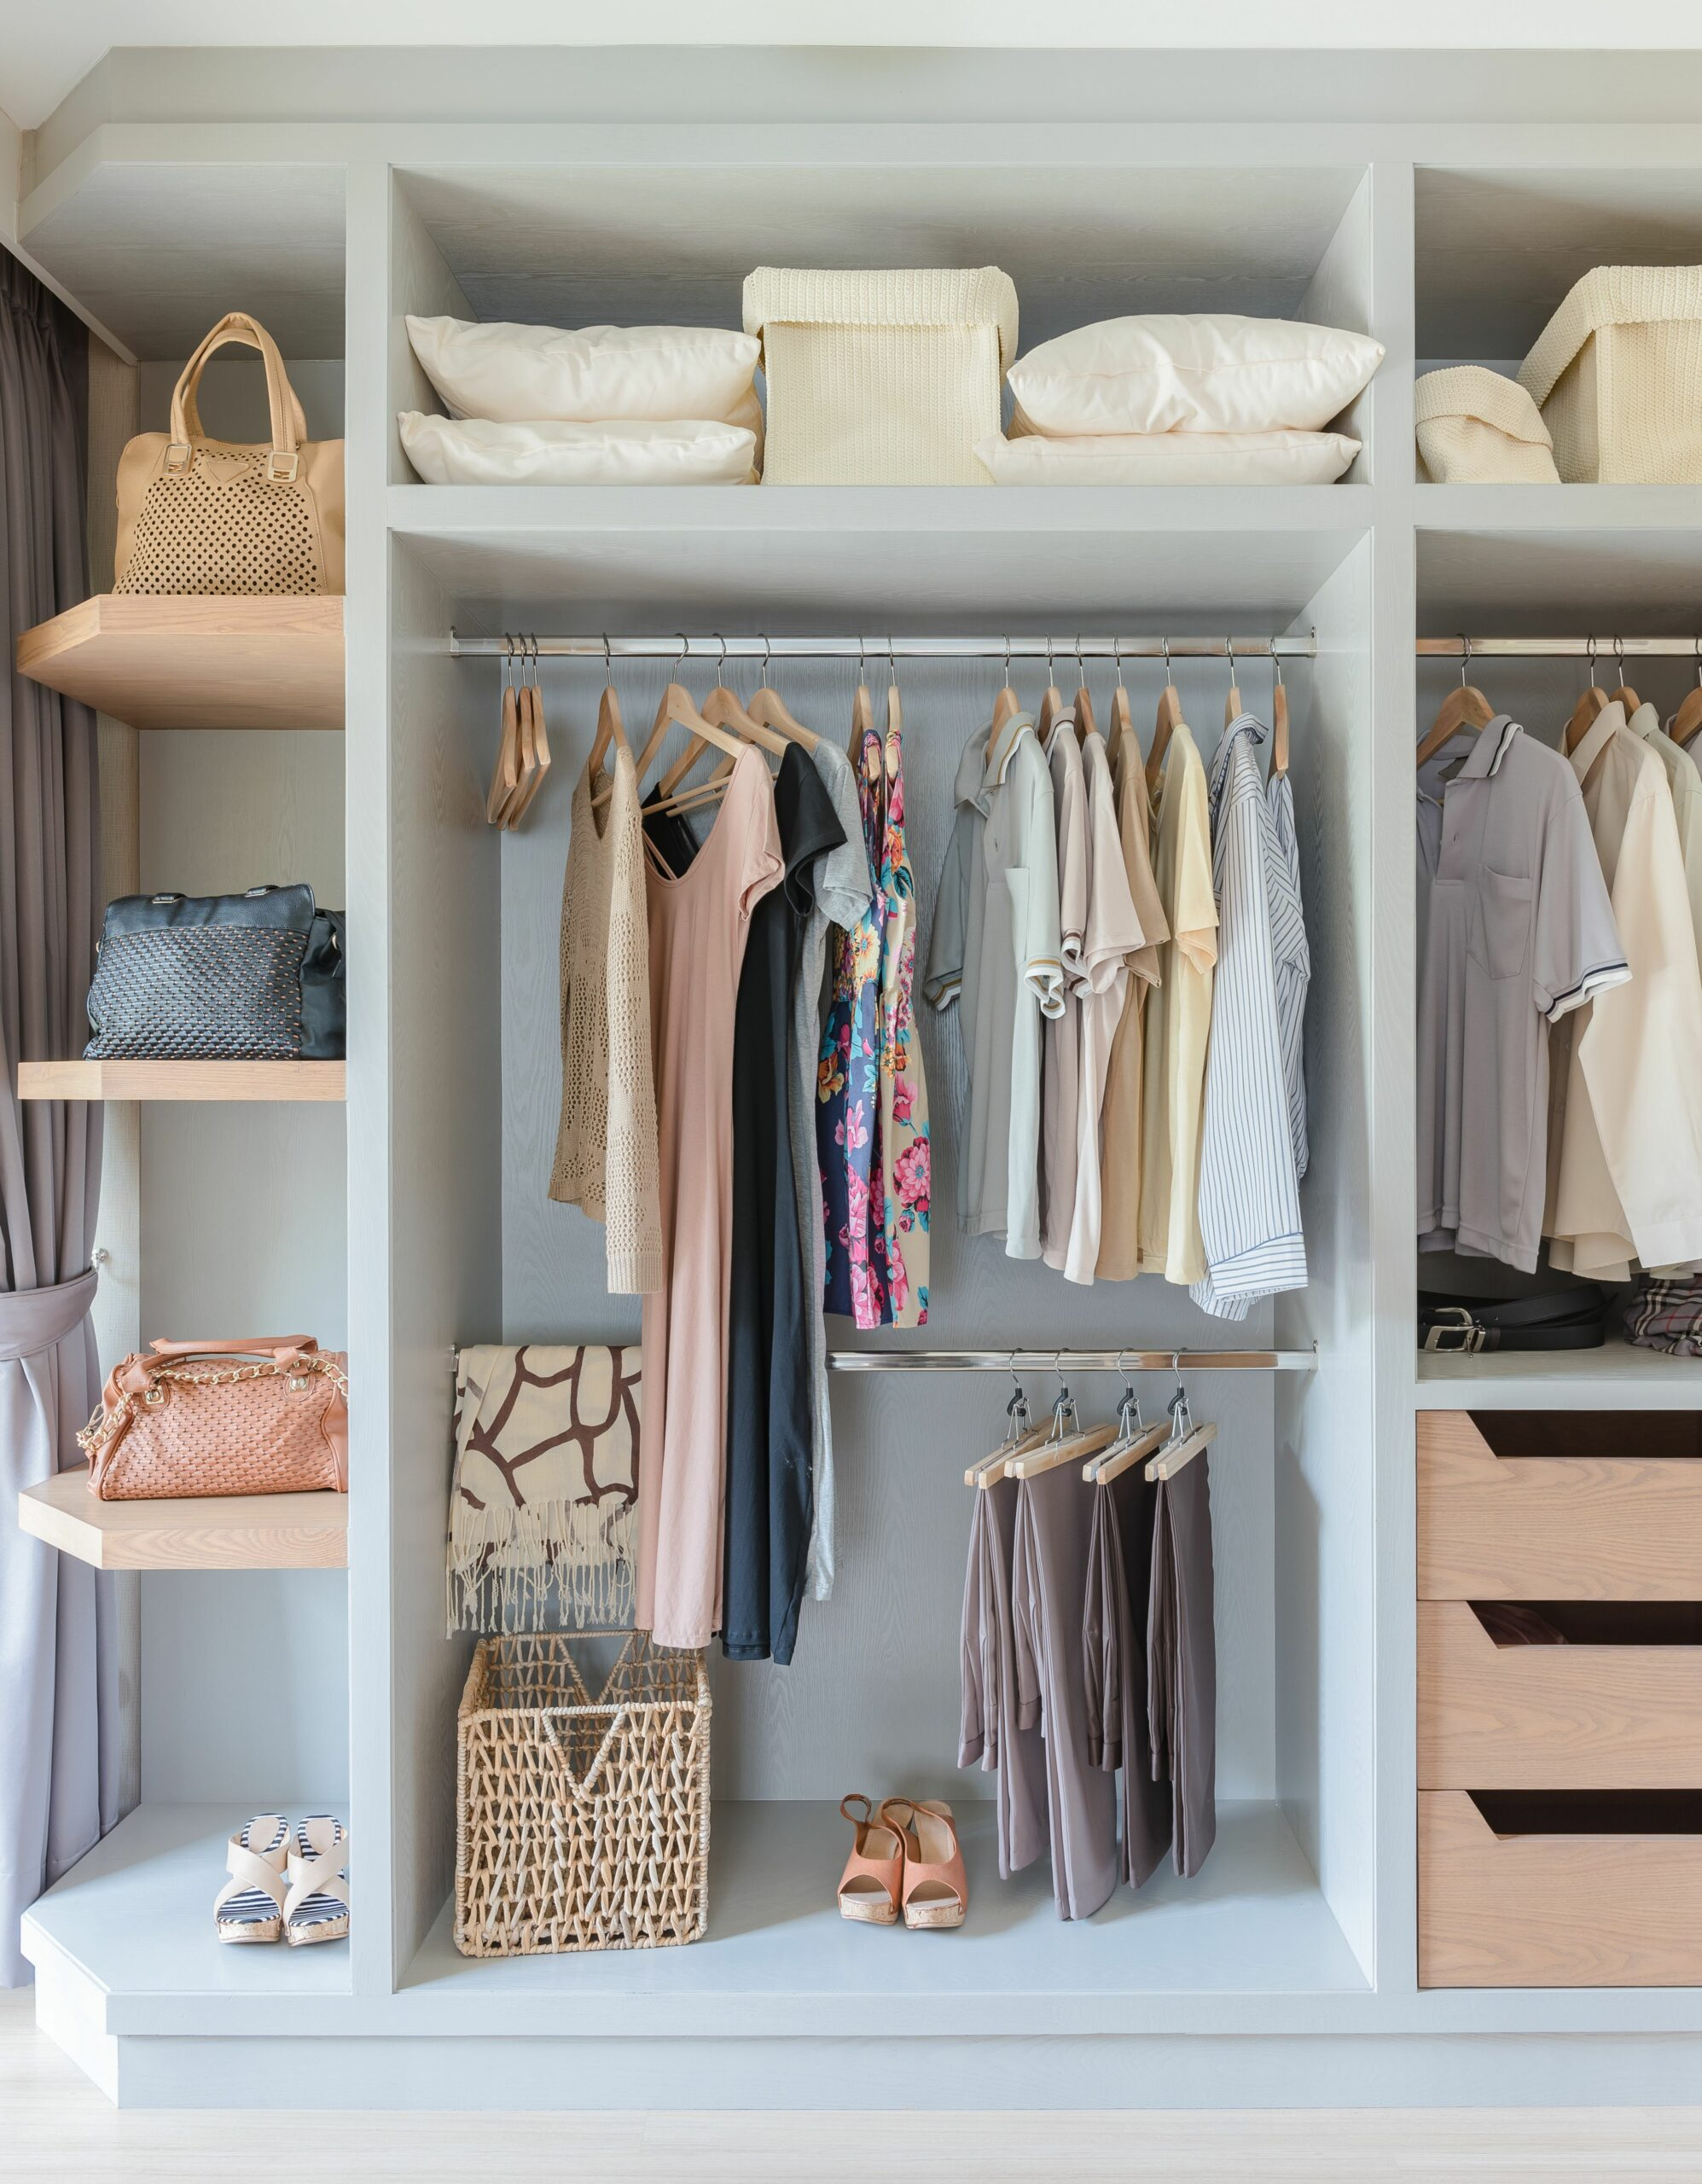 12 Best Closet Organization Ideas to Maximize Space and Style ...